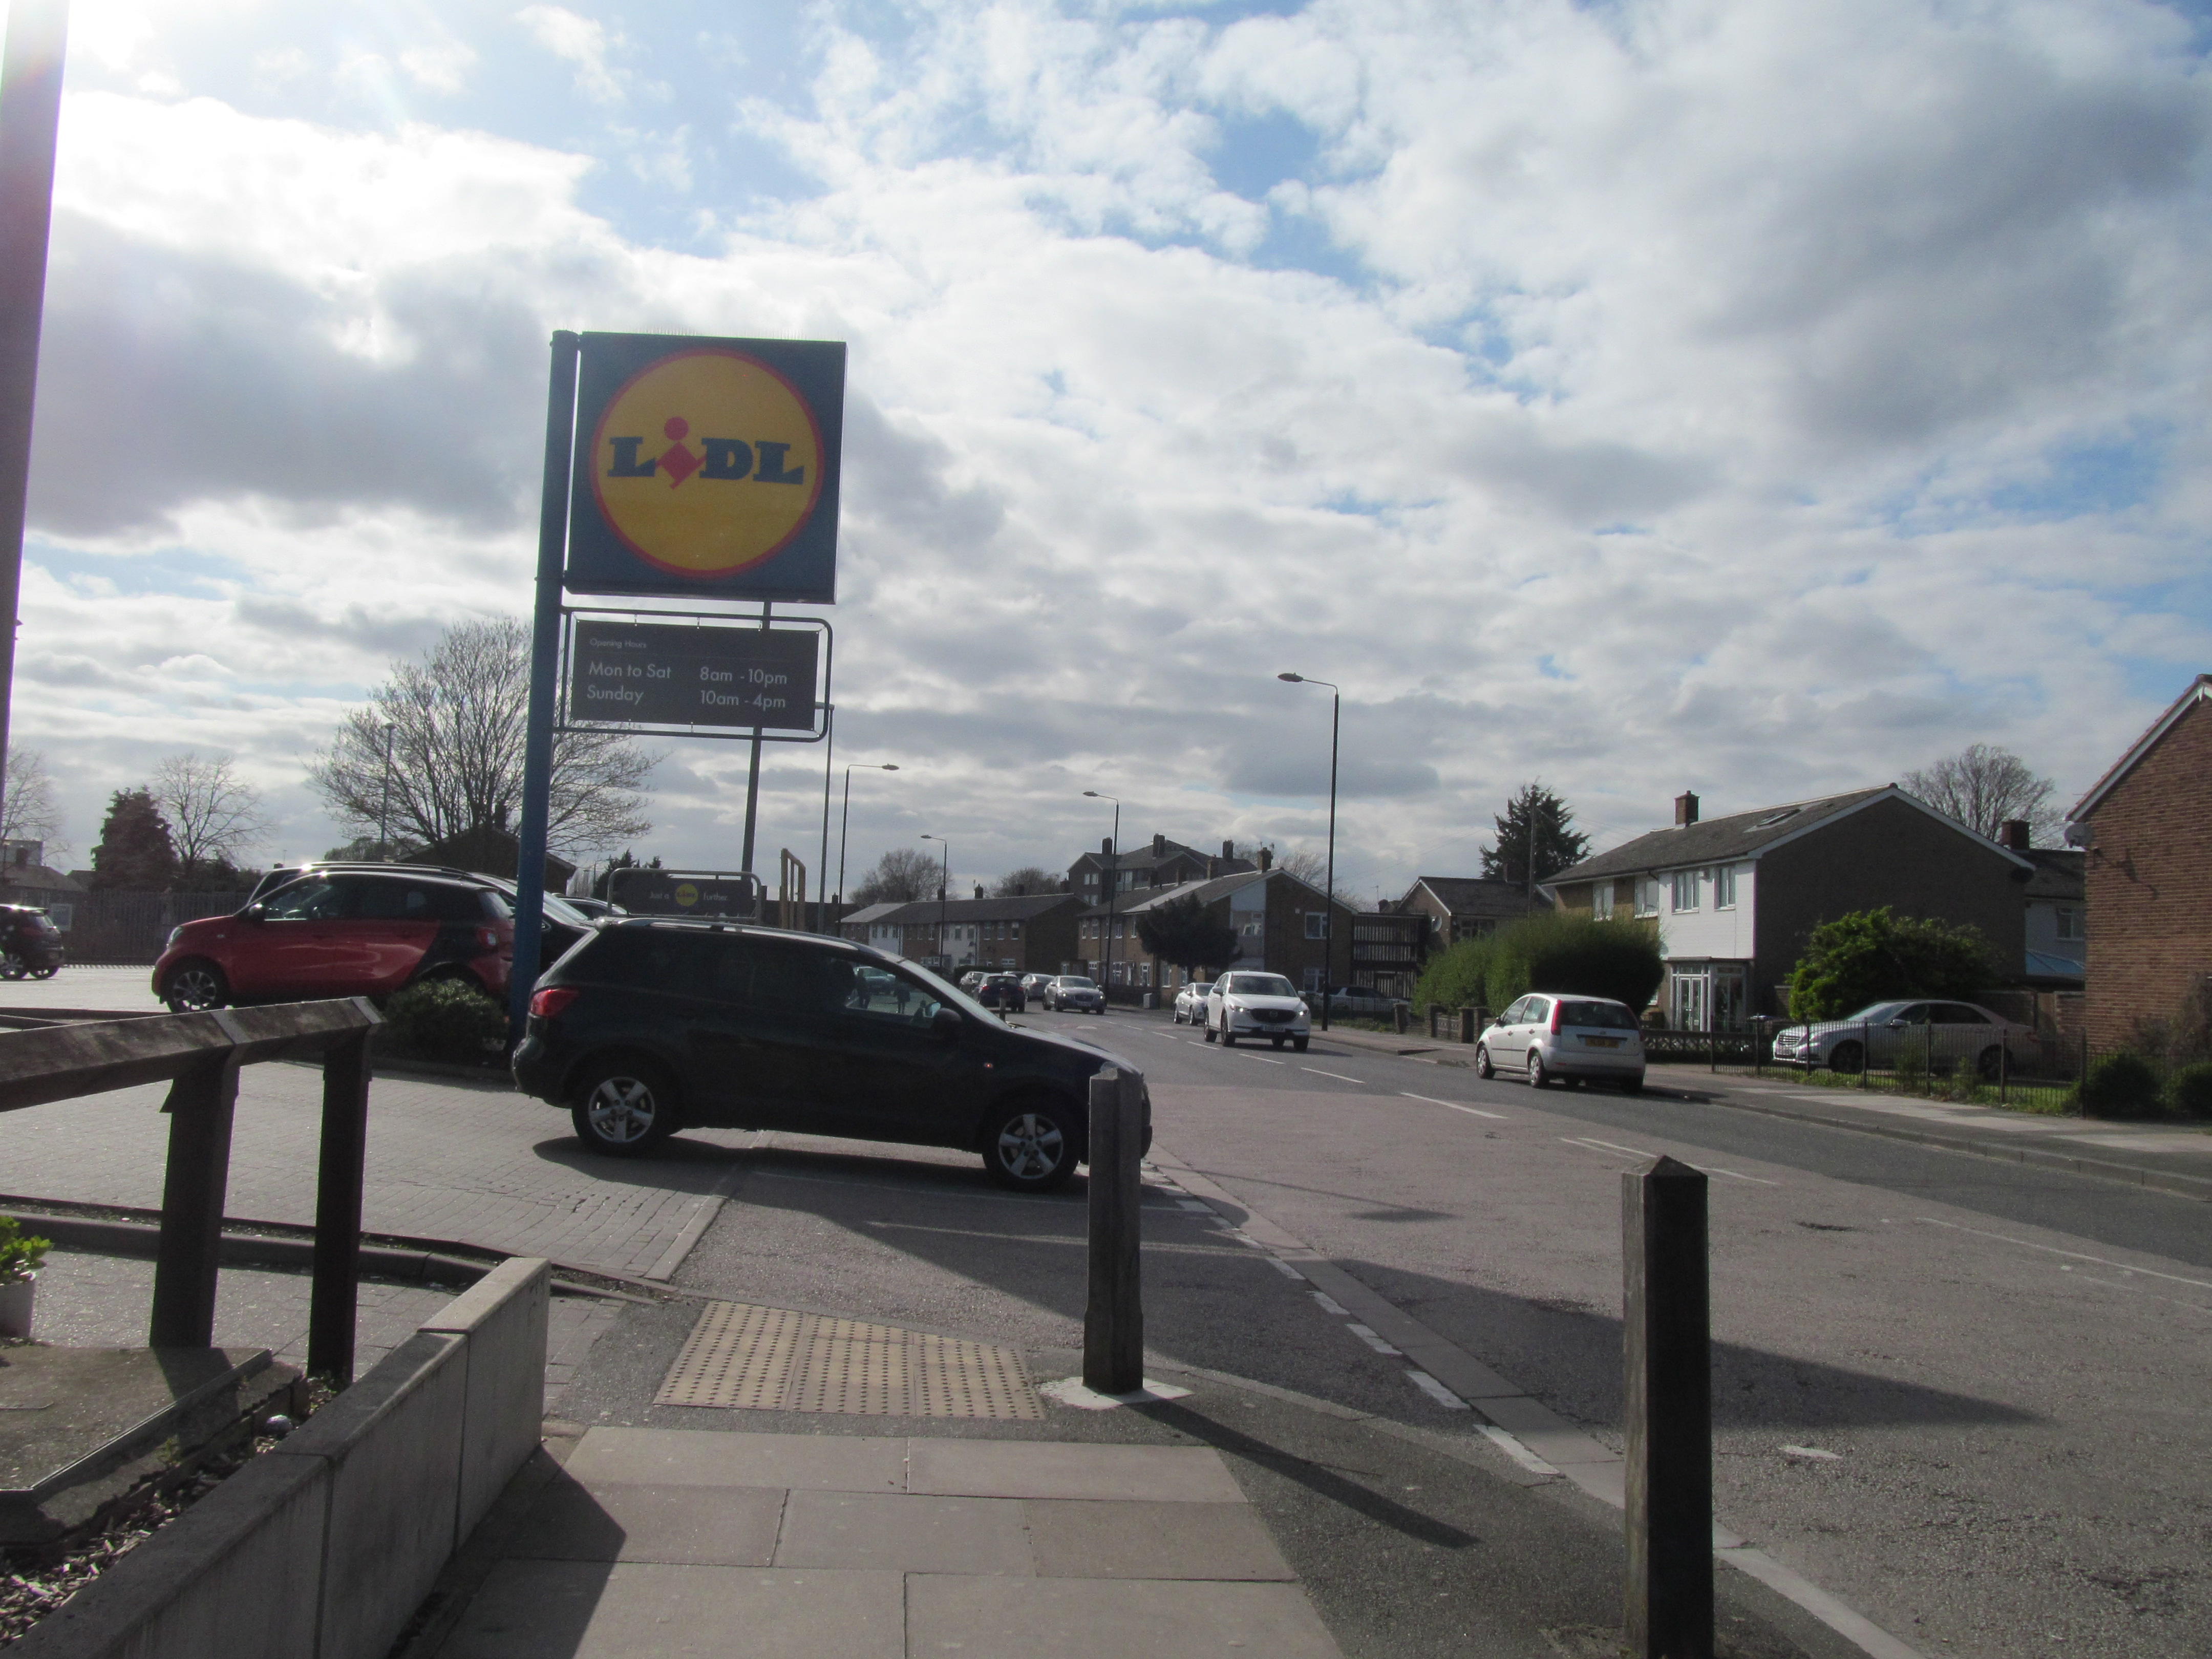 Lidl now looking to build 3,000 homes above shops – impact at Abbey Wood, Woolwich, Erith and more?